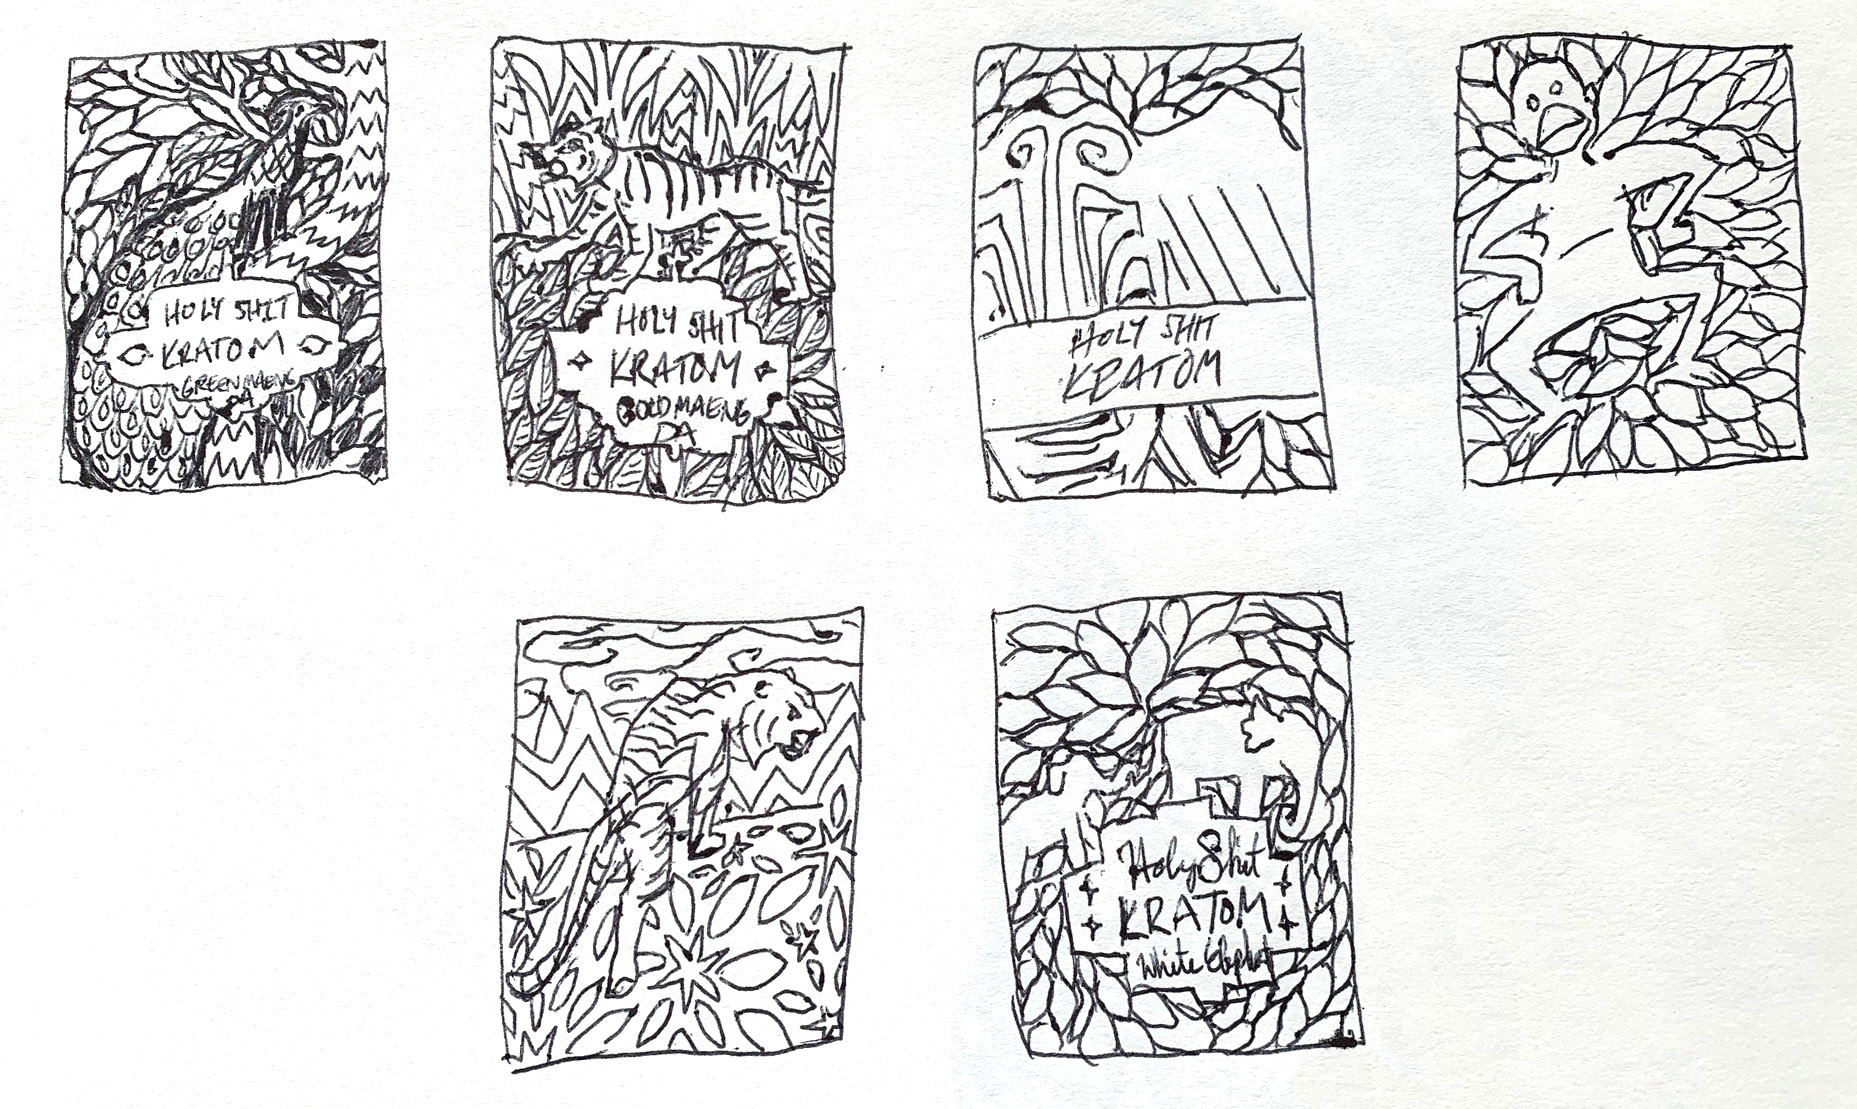 Rough sketches of packaging designs with animals.